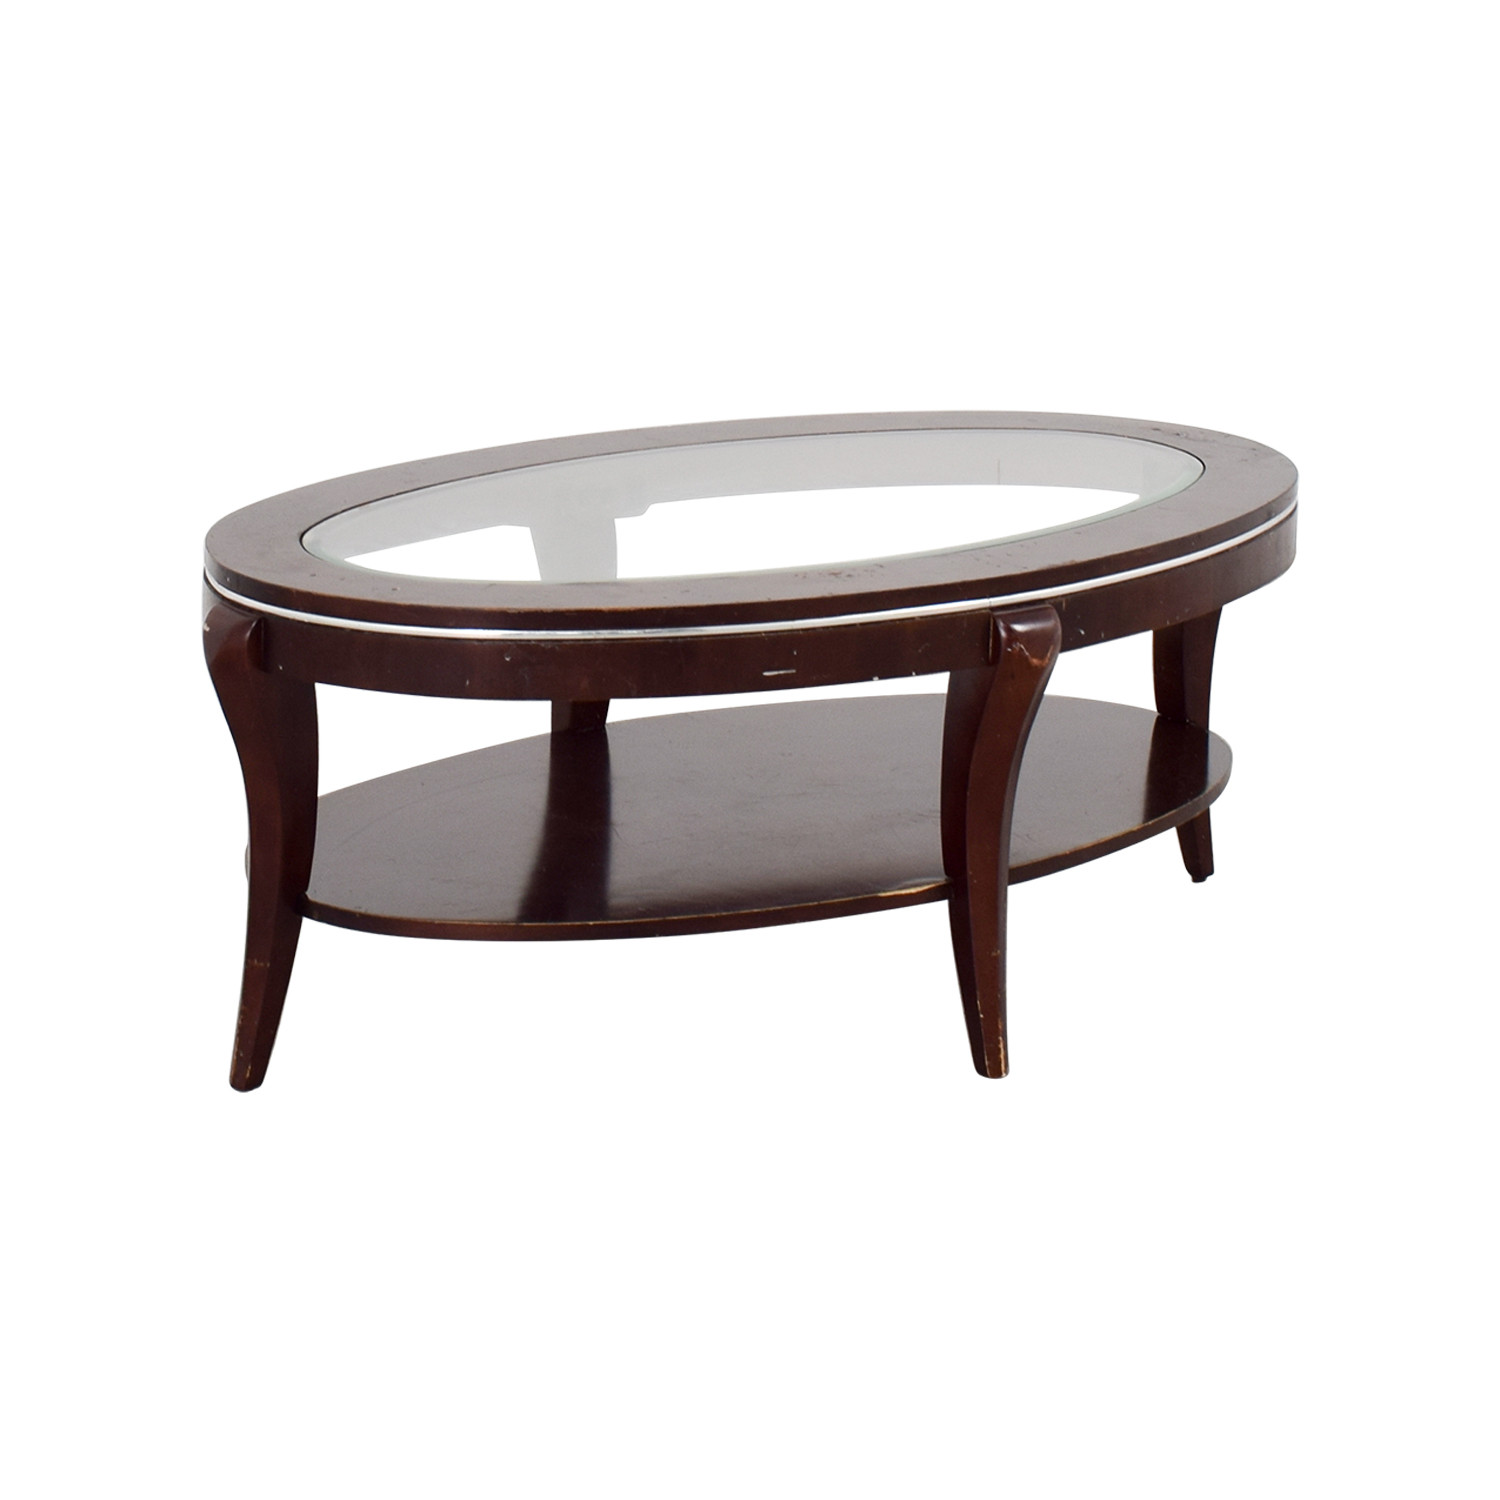 Best ideas about Wood And Glass Coffee Table . Save or Pin OFF Wood and Glass Oval Coffee Table Tables Now.